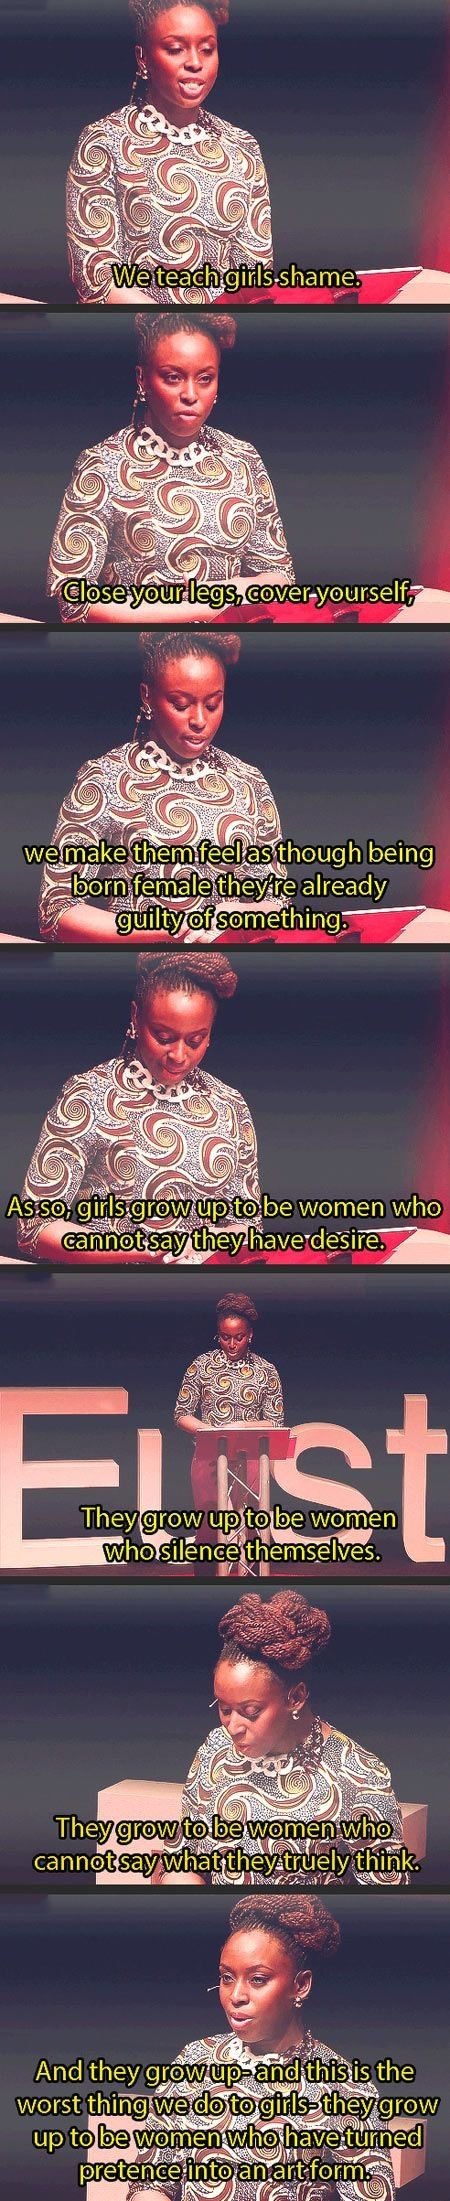 14 Celebrity Quotes on Women and Equality | Her